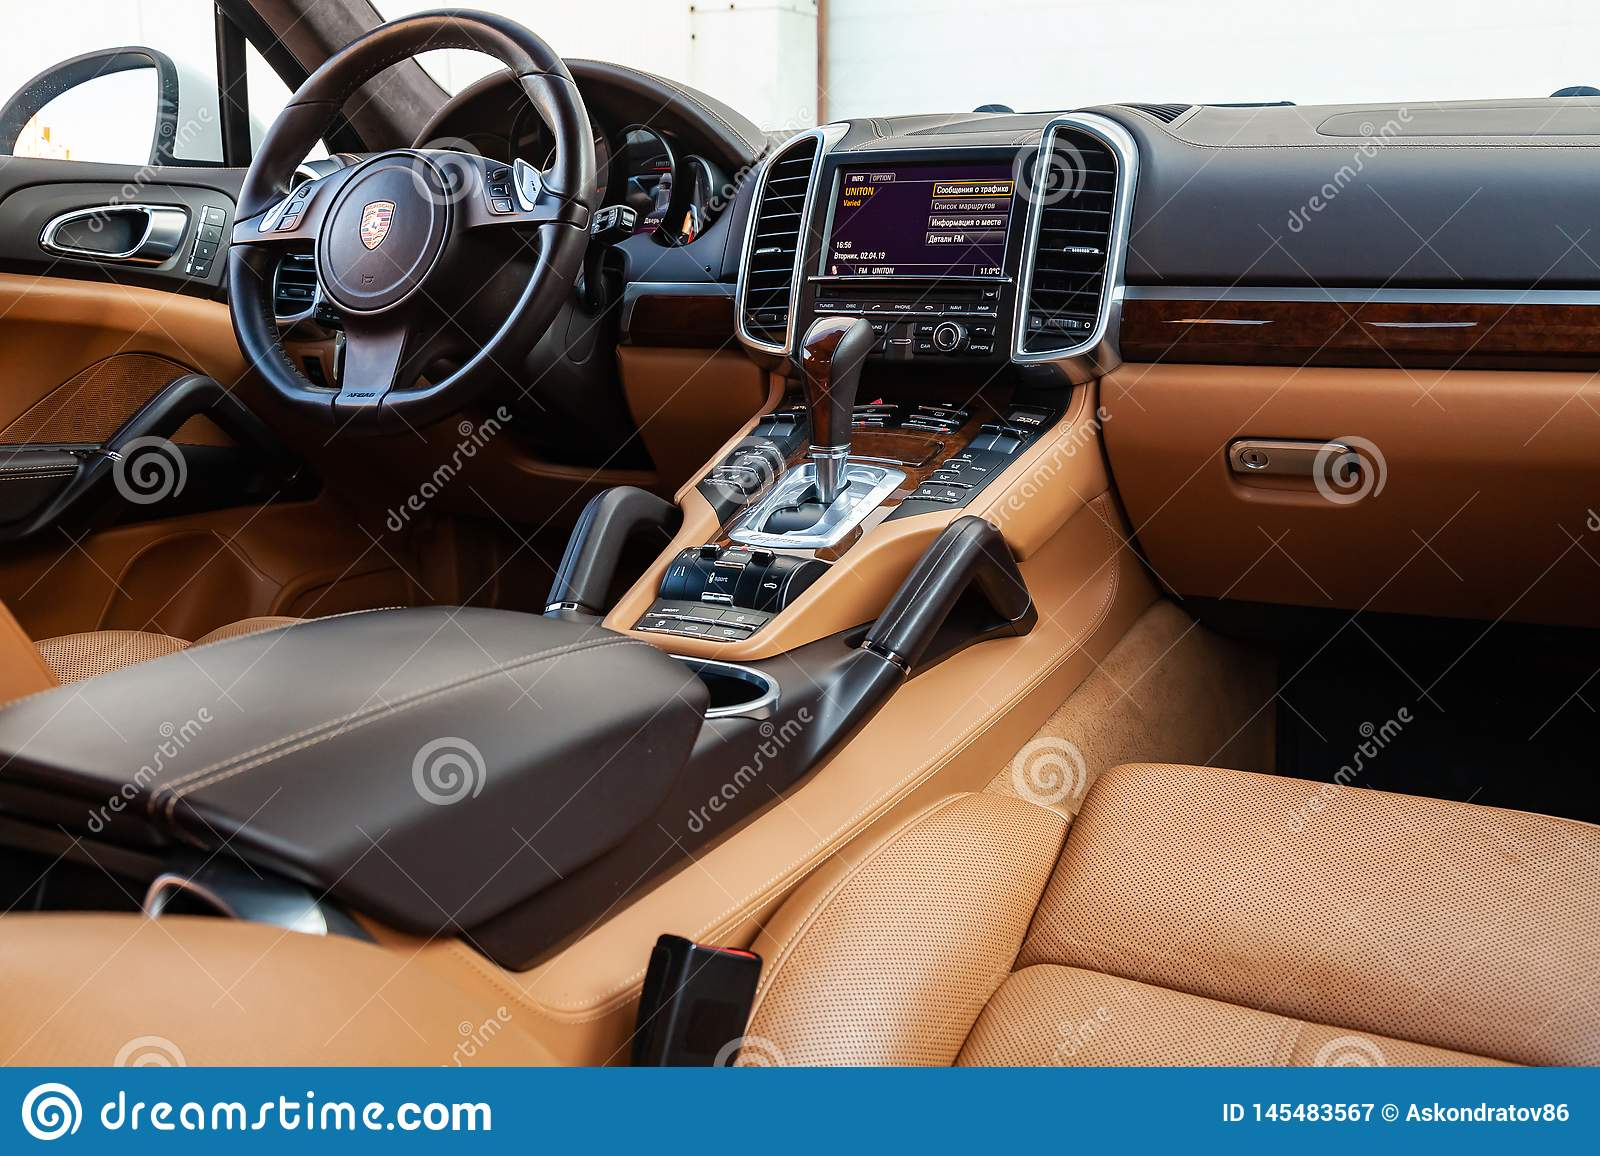 The Interior Of The Car Porsche Cayenne 958 2011 Year With A View Of The Steering Wheel Dashboard Seats And Multimedia System Editorial Photography Image Of Leather Auto 145483567